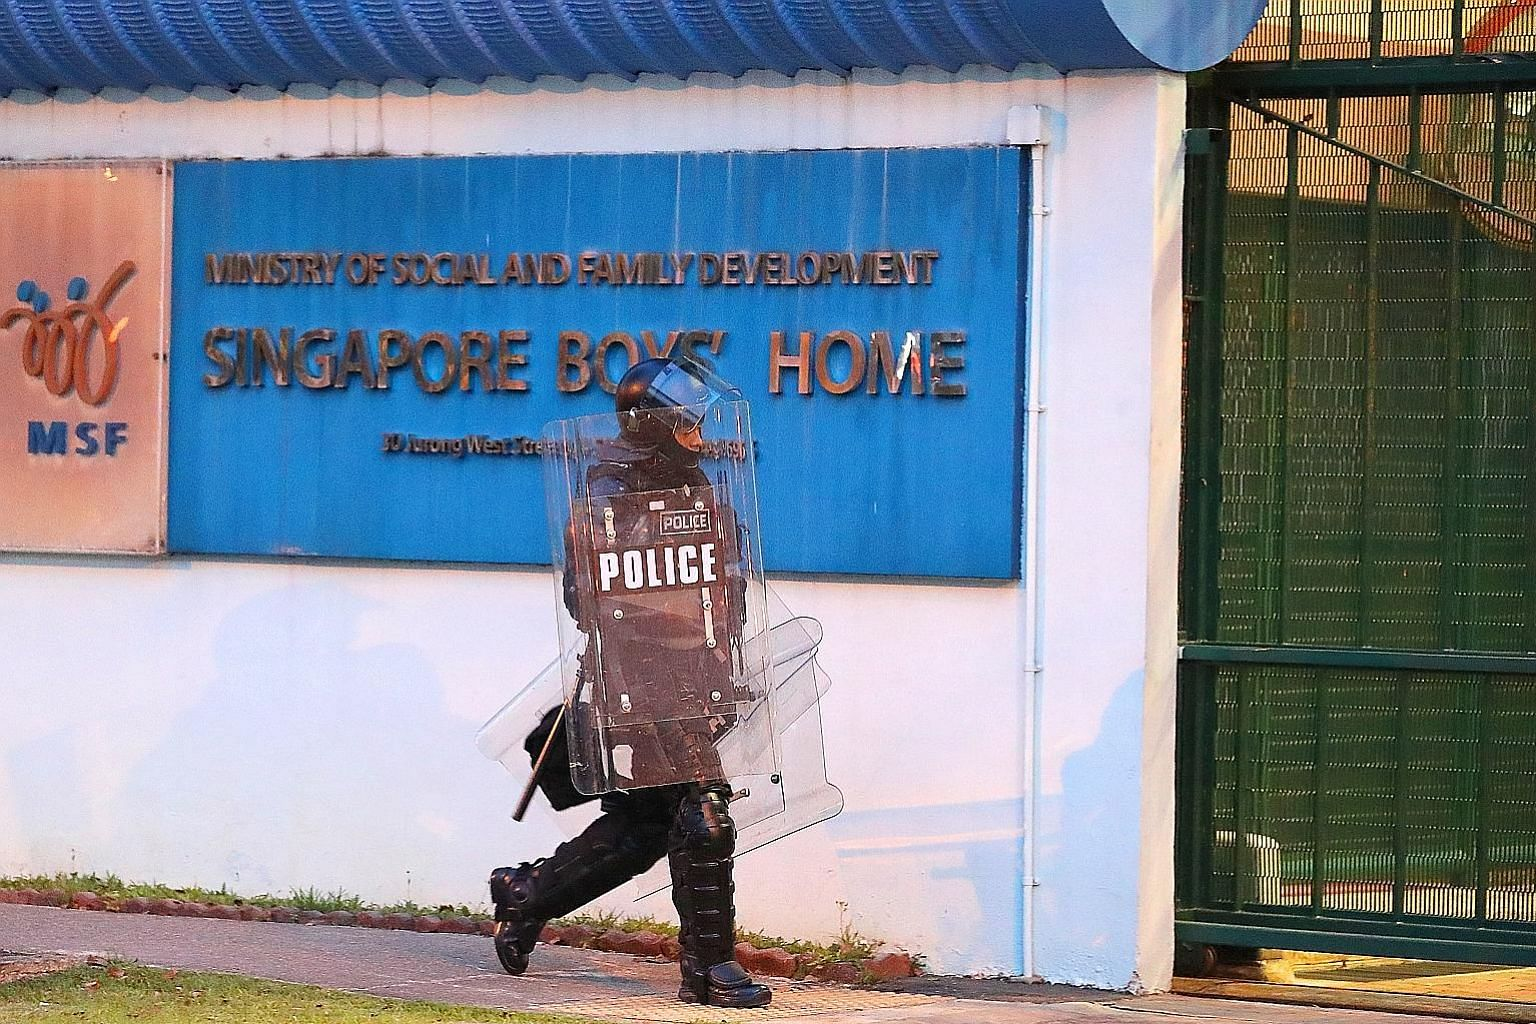 A police officer at the Singapore Boys' Home on Sept 28 last year, when the riot took place. An auxiliary police officer suffered an eye injury, while a youth guidance officer and the home's assistant manager had head injuries.